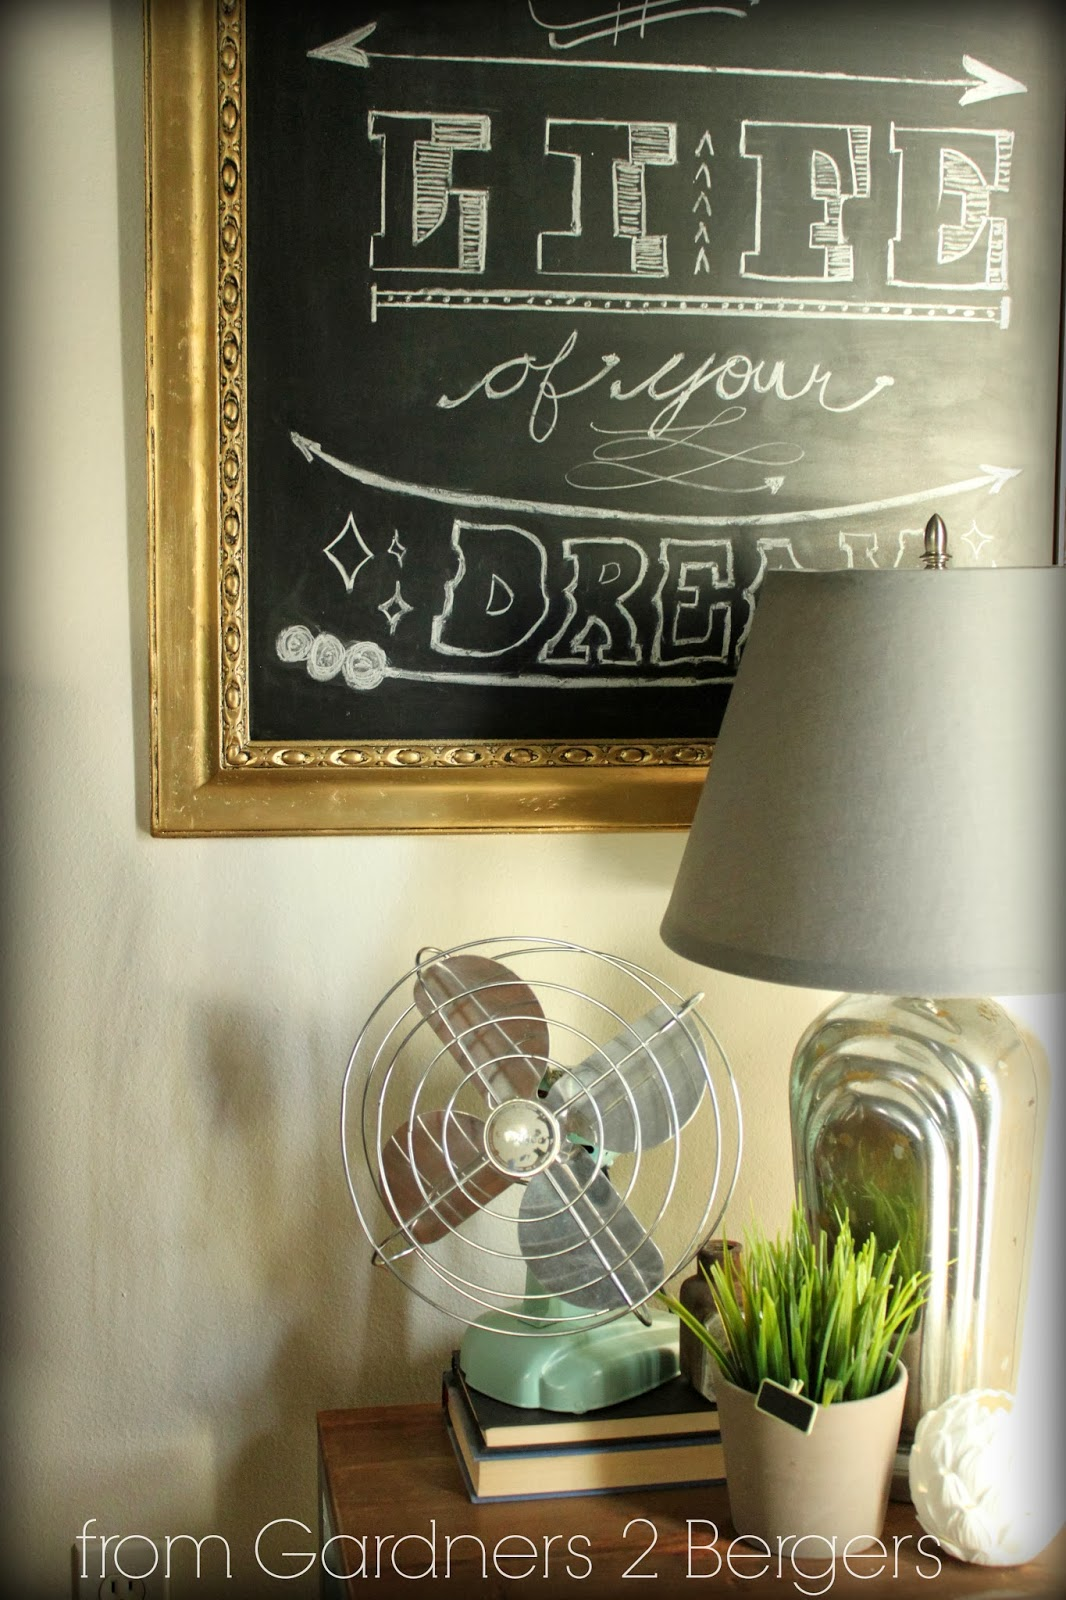 from Gardners 2 Bergers: How to DIY Gild a Gold Frame Chalkboard